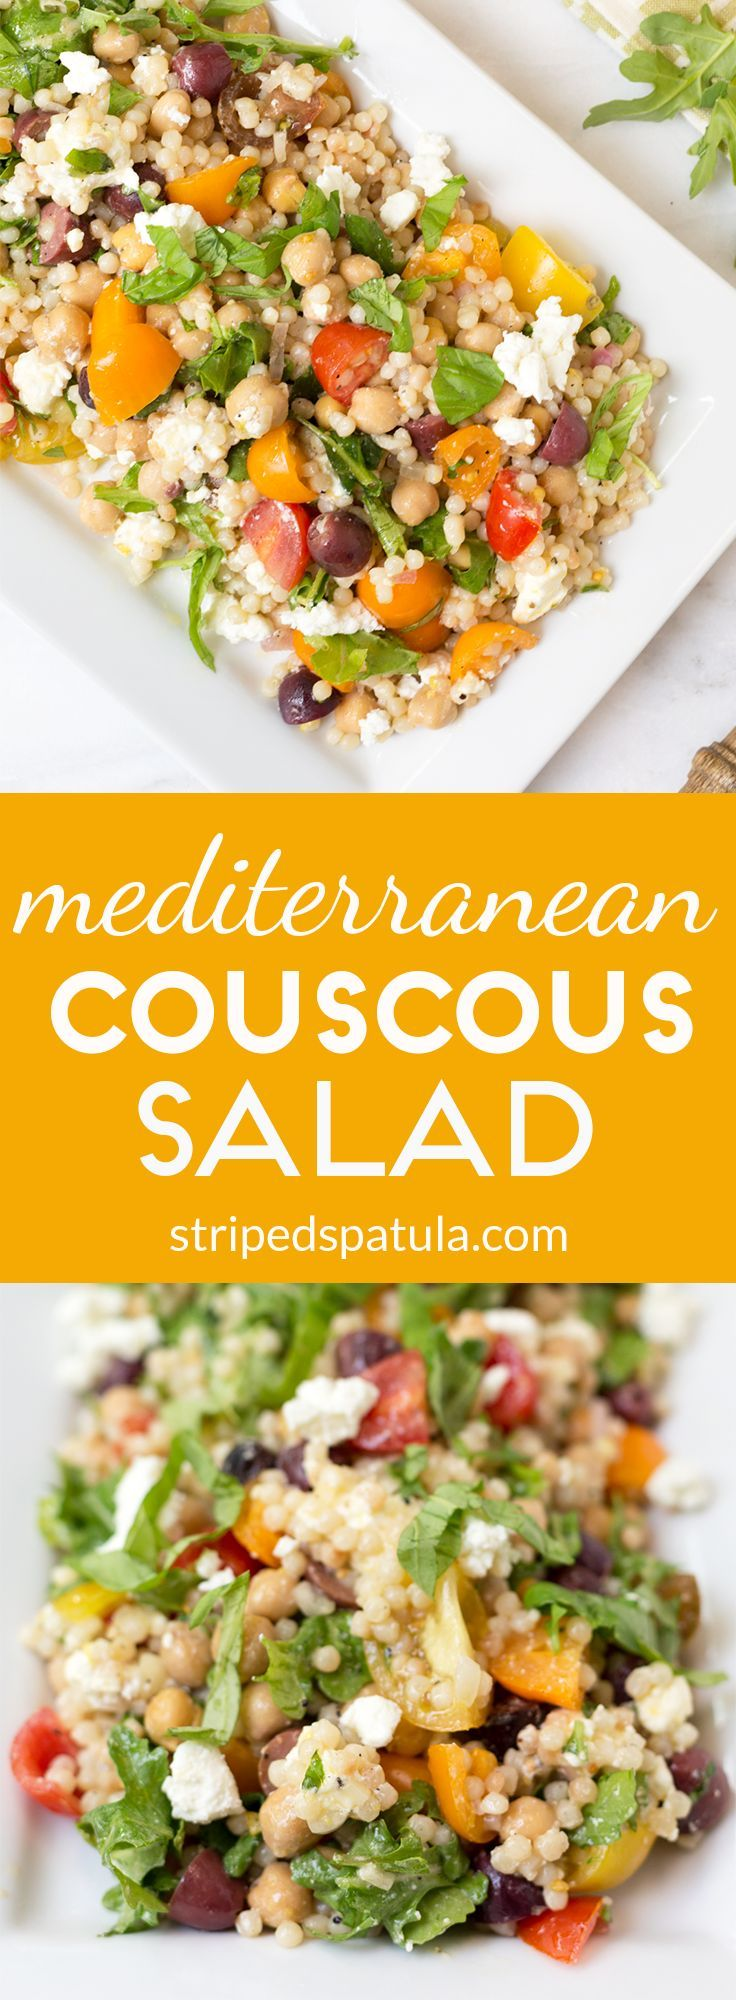 This couscous salad is a bright and fresh side dish or meatless main dish that's perfect for a weeknight dinner or easy summer entertaining!